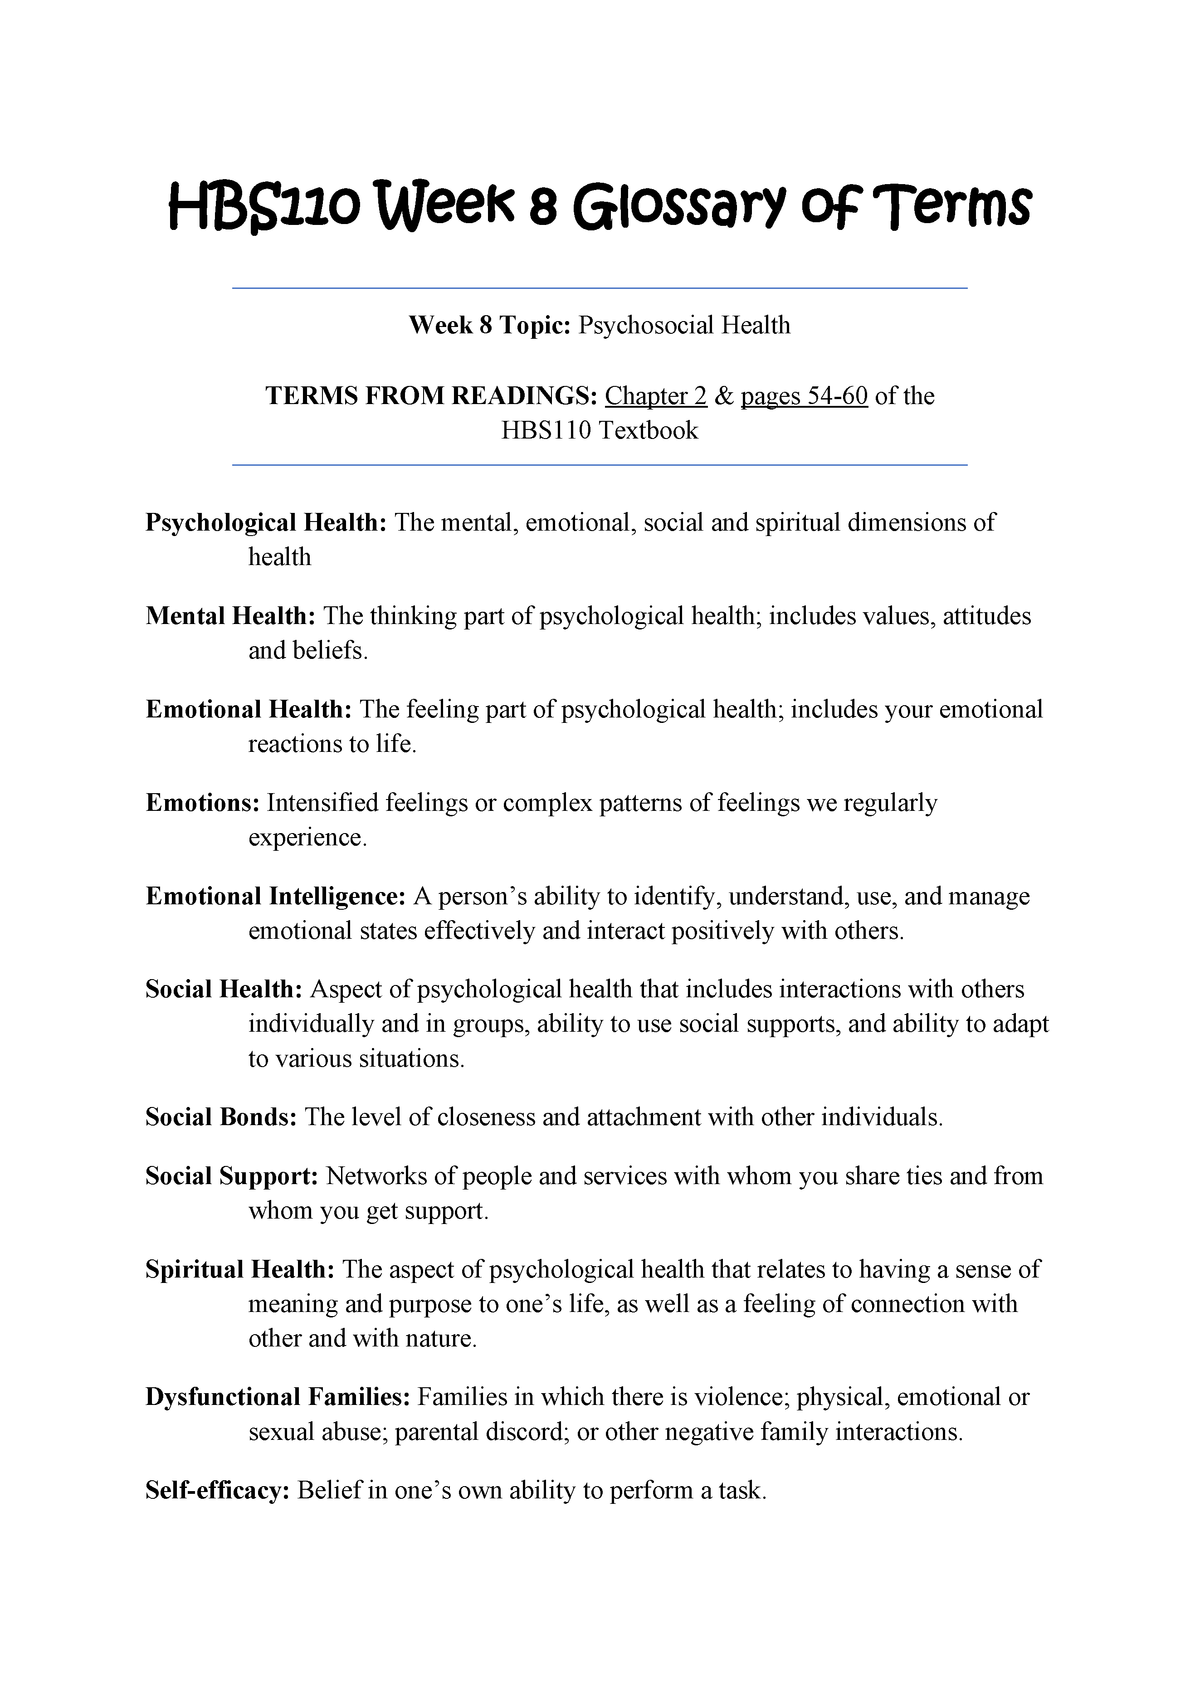 HBS110 Week 8 Glossary of Terms from Textbook (Psychosocial